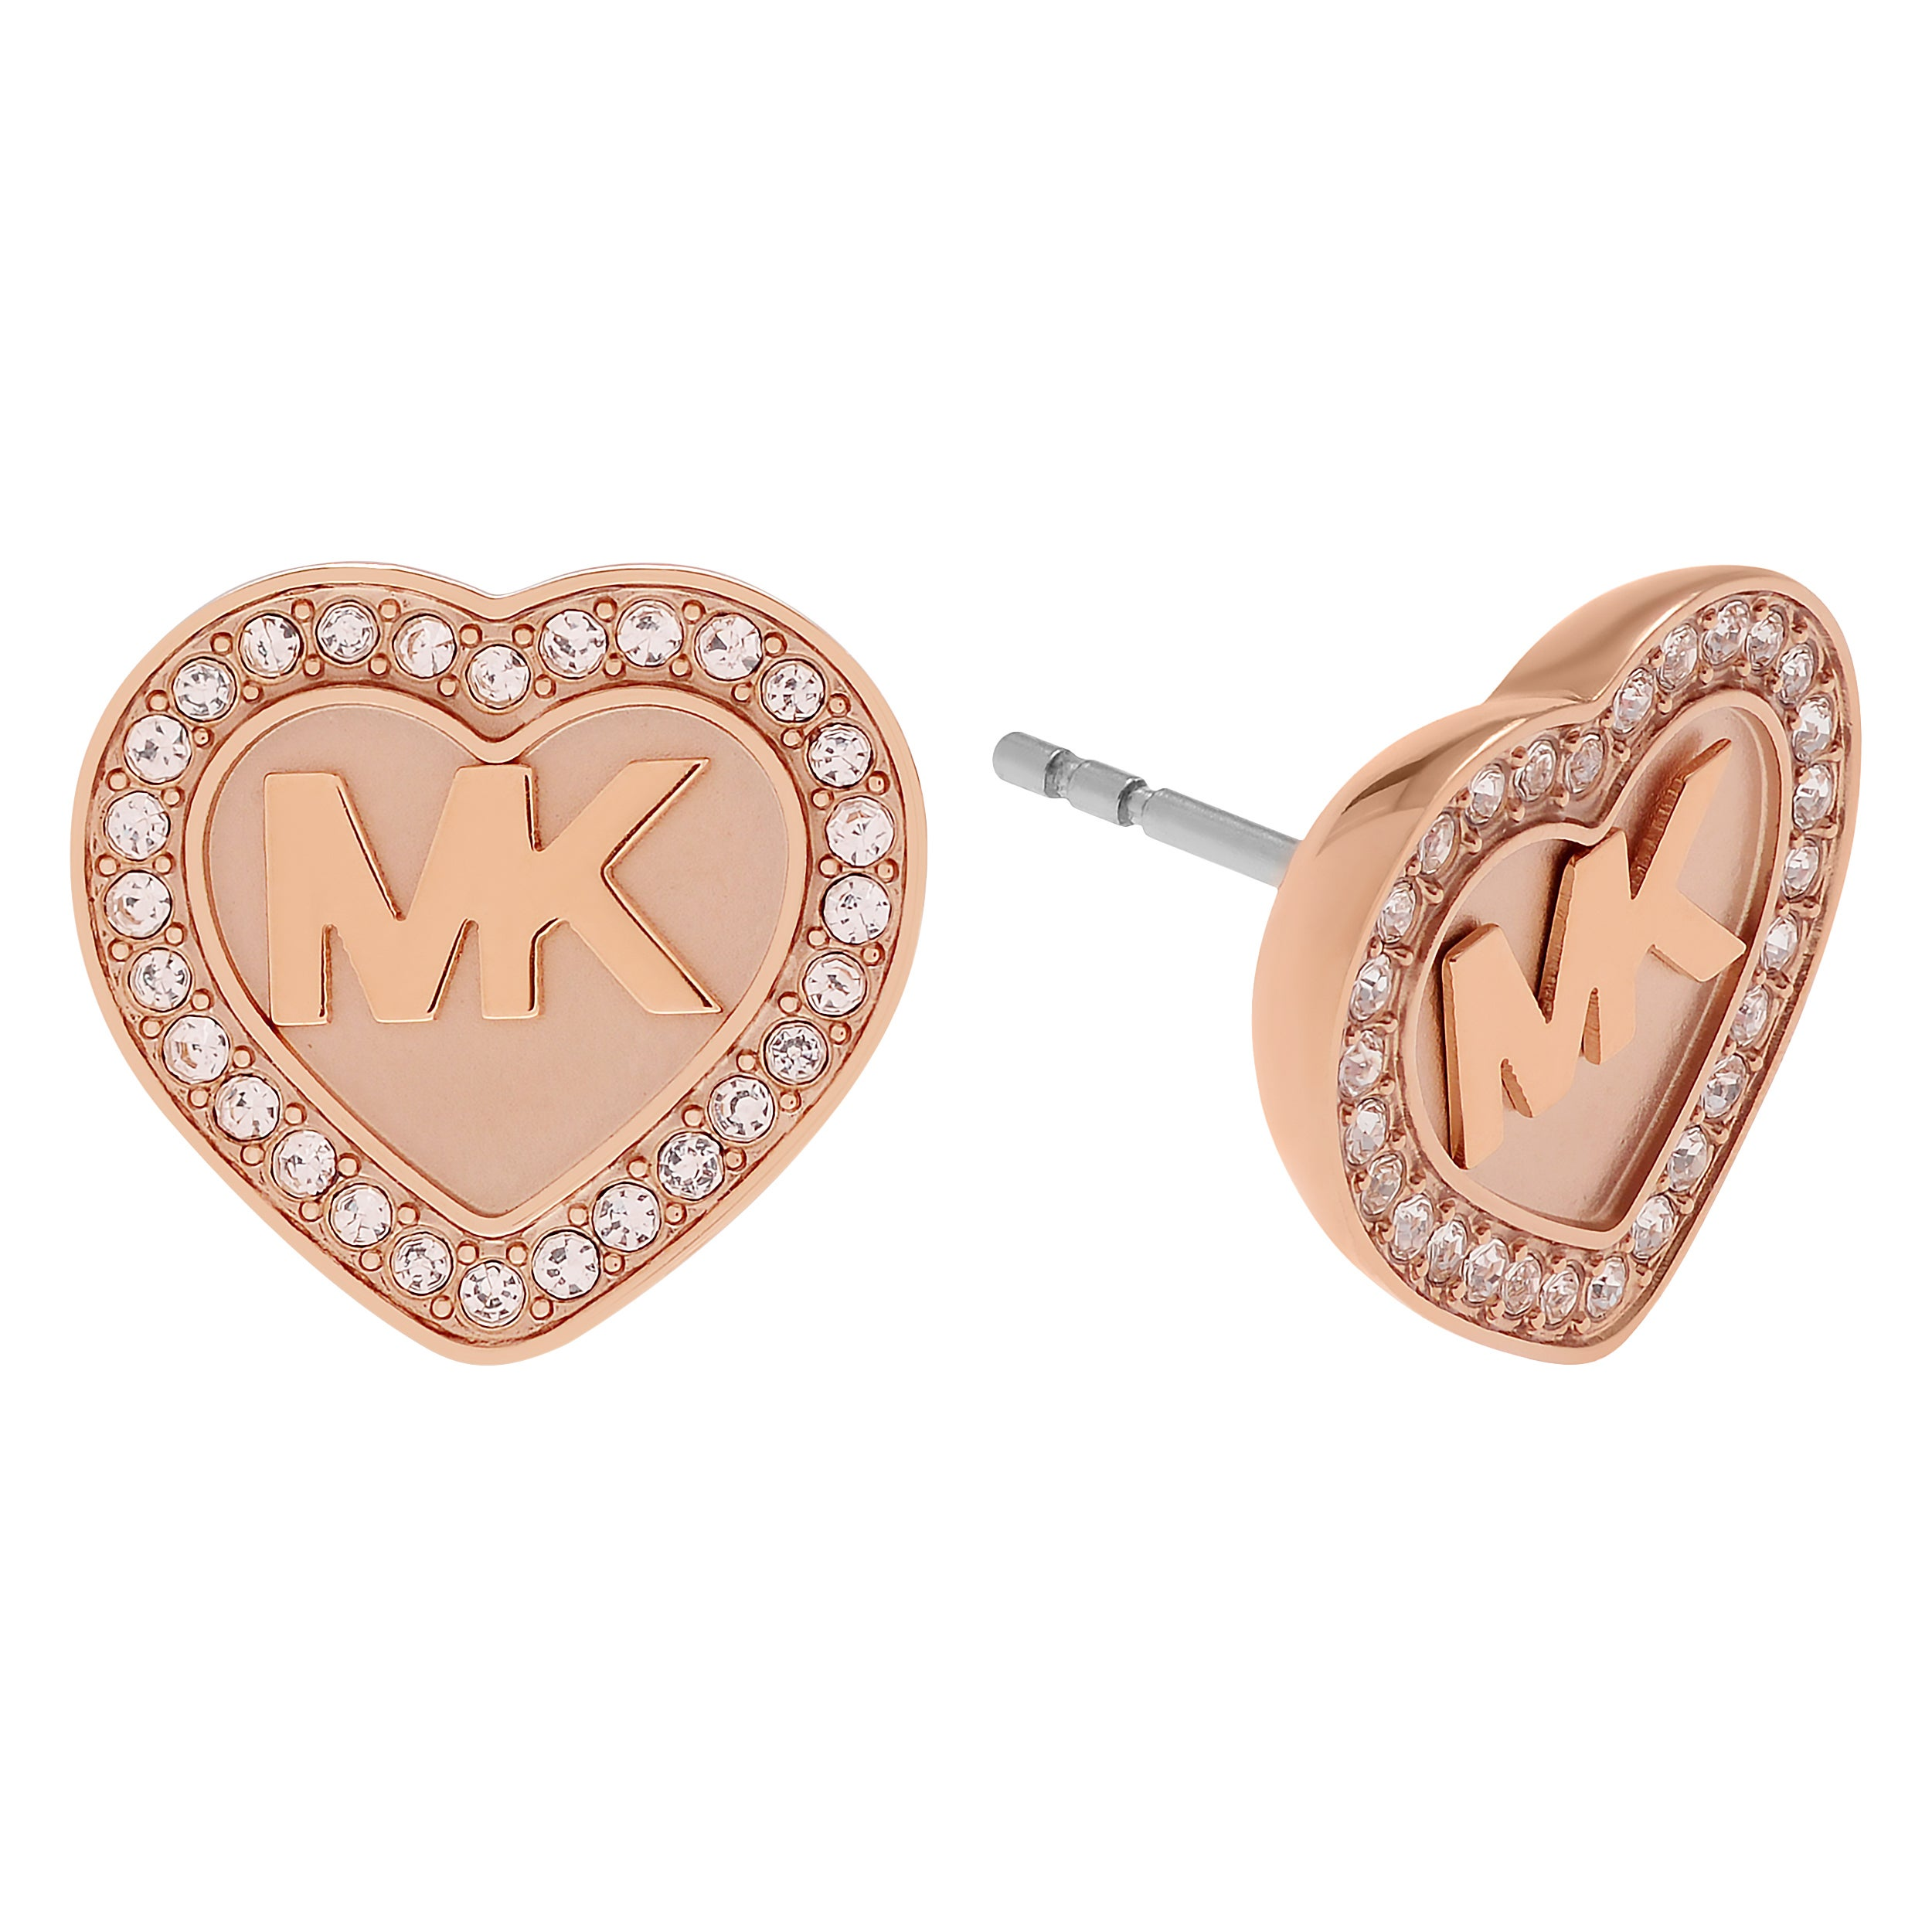 MK earrings sale